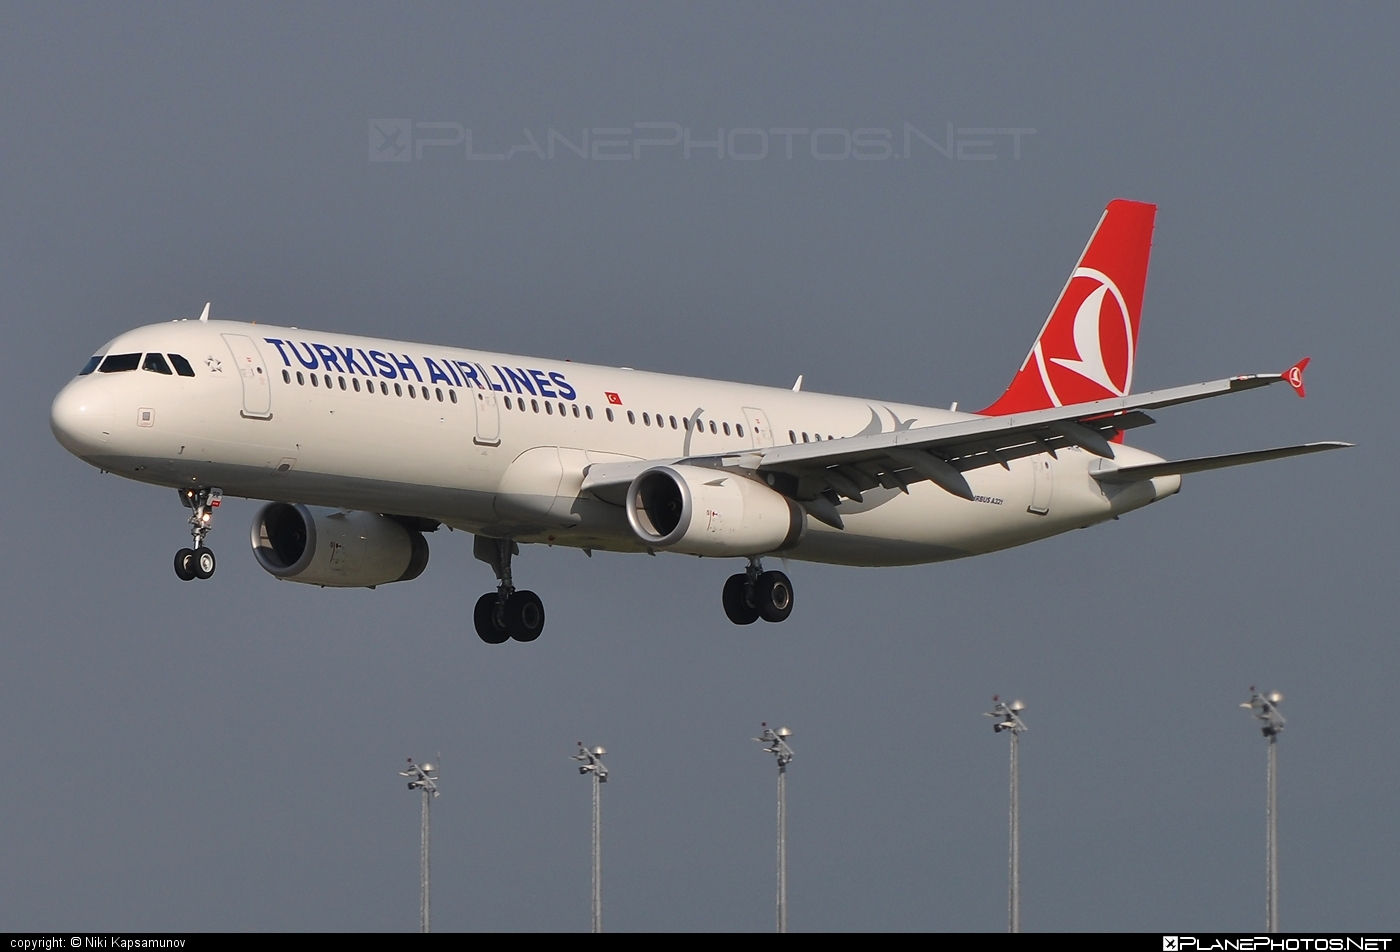 Airbus A321-231 - TC-JRR operated by Turkish Airlines #a320family #a321 #airbus #airbus321 #turkishairlines